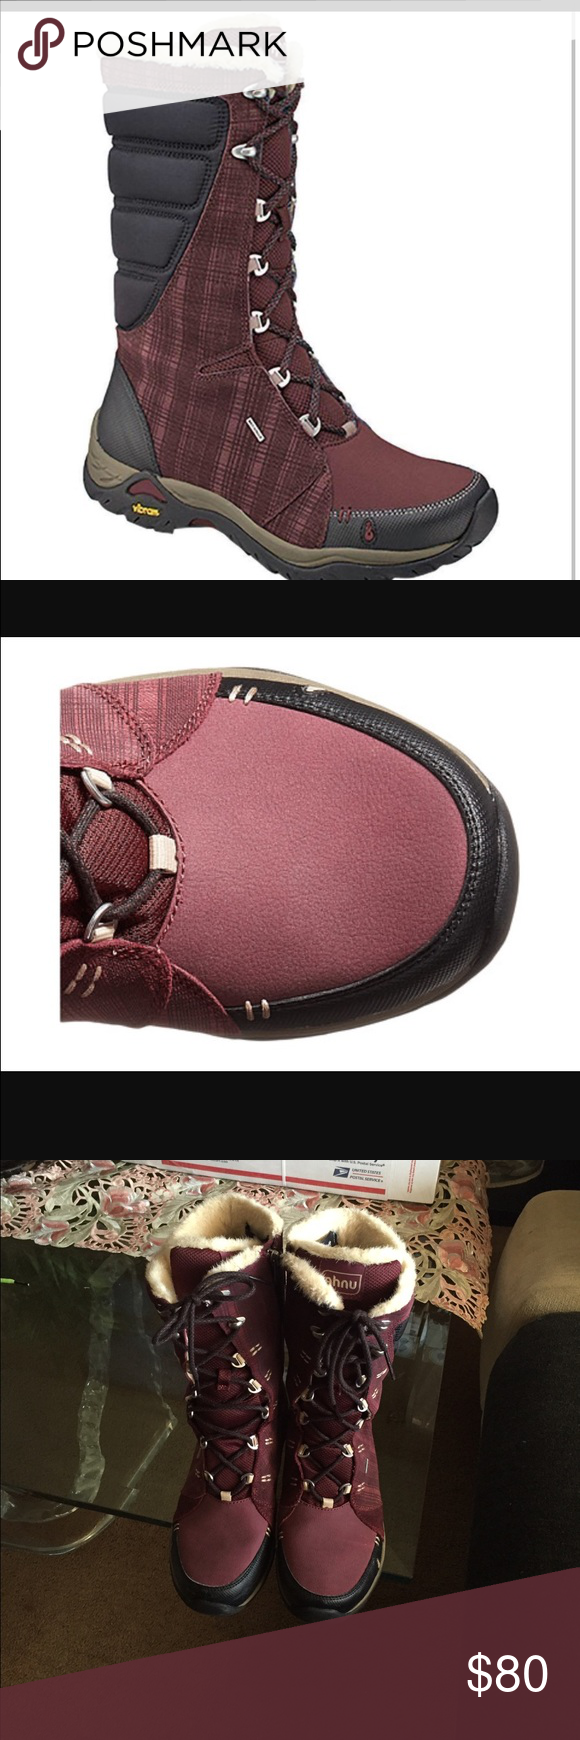 AHNU-NORTHRIDGE INSULATED Waterproof RED MAHOGANY Thinsulate insulation and a moisture-wicking lining keep your feet warm and dry in this waterproof leather boot. A removable EVA footbed offers all-day support. Ahnu Shoes Winter & Rain Boots